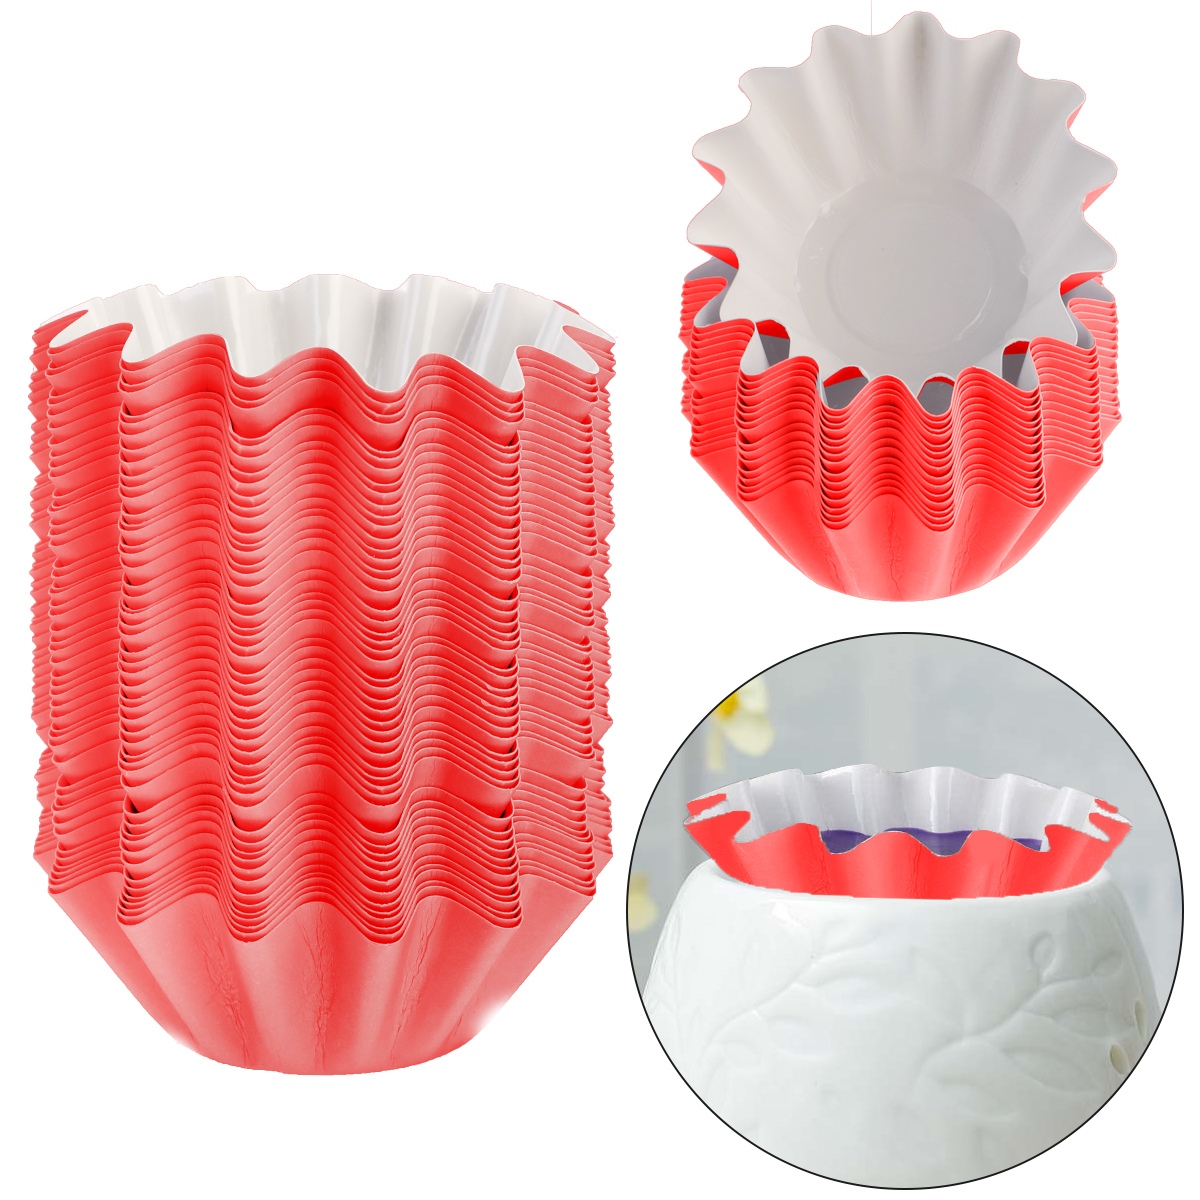 50//100Pcs Wax Melt Warmer Liners Scented Candle Warmers Melter Burner Reusable !